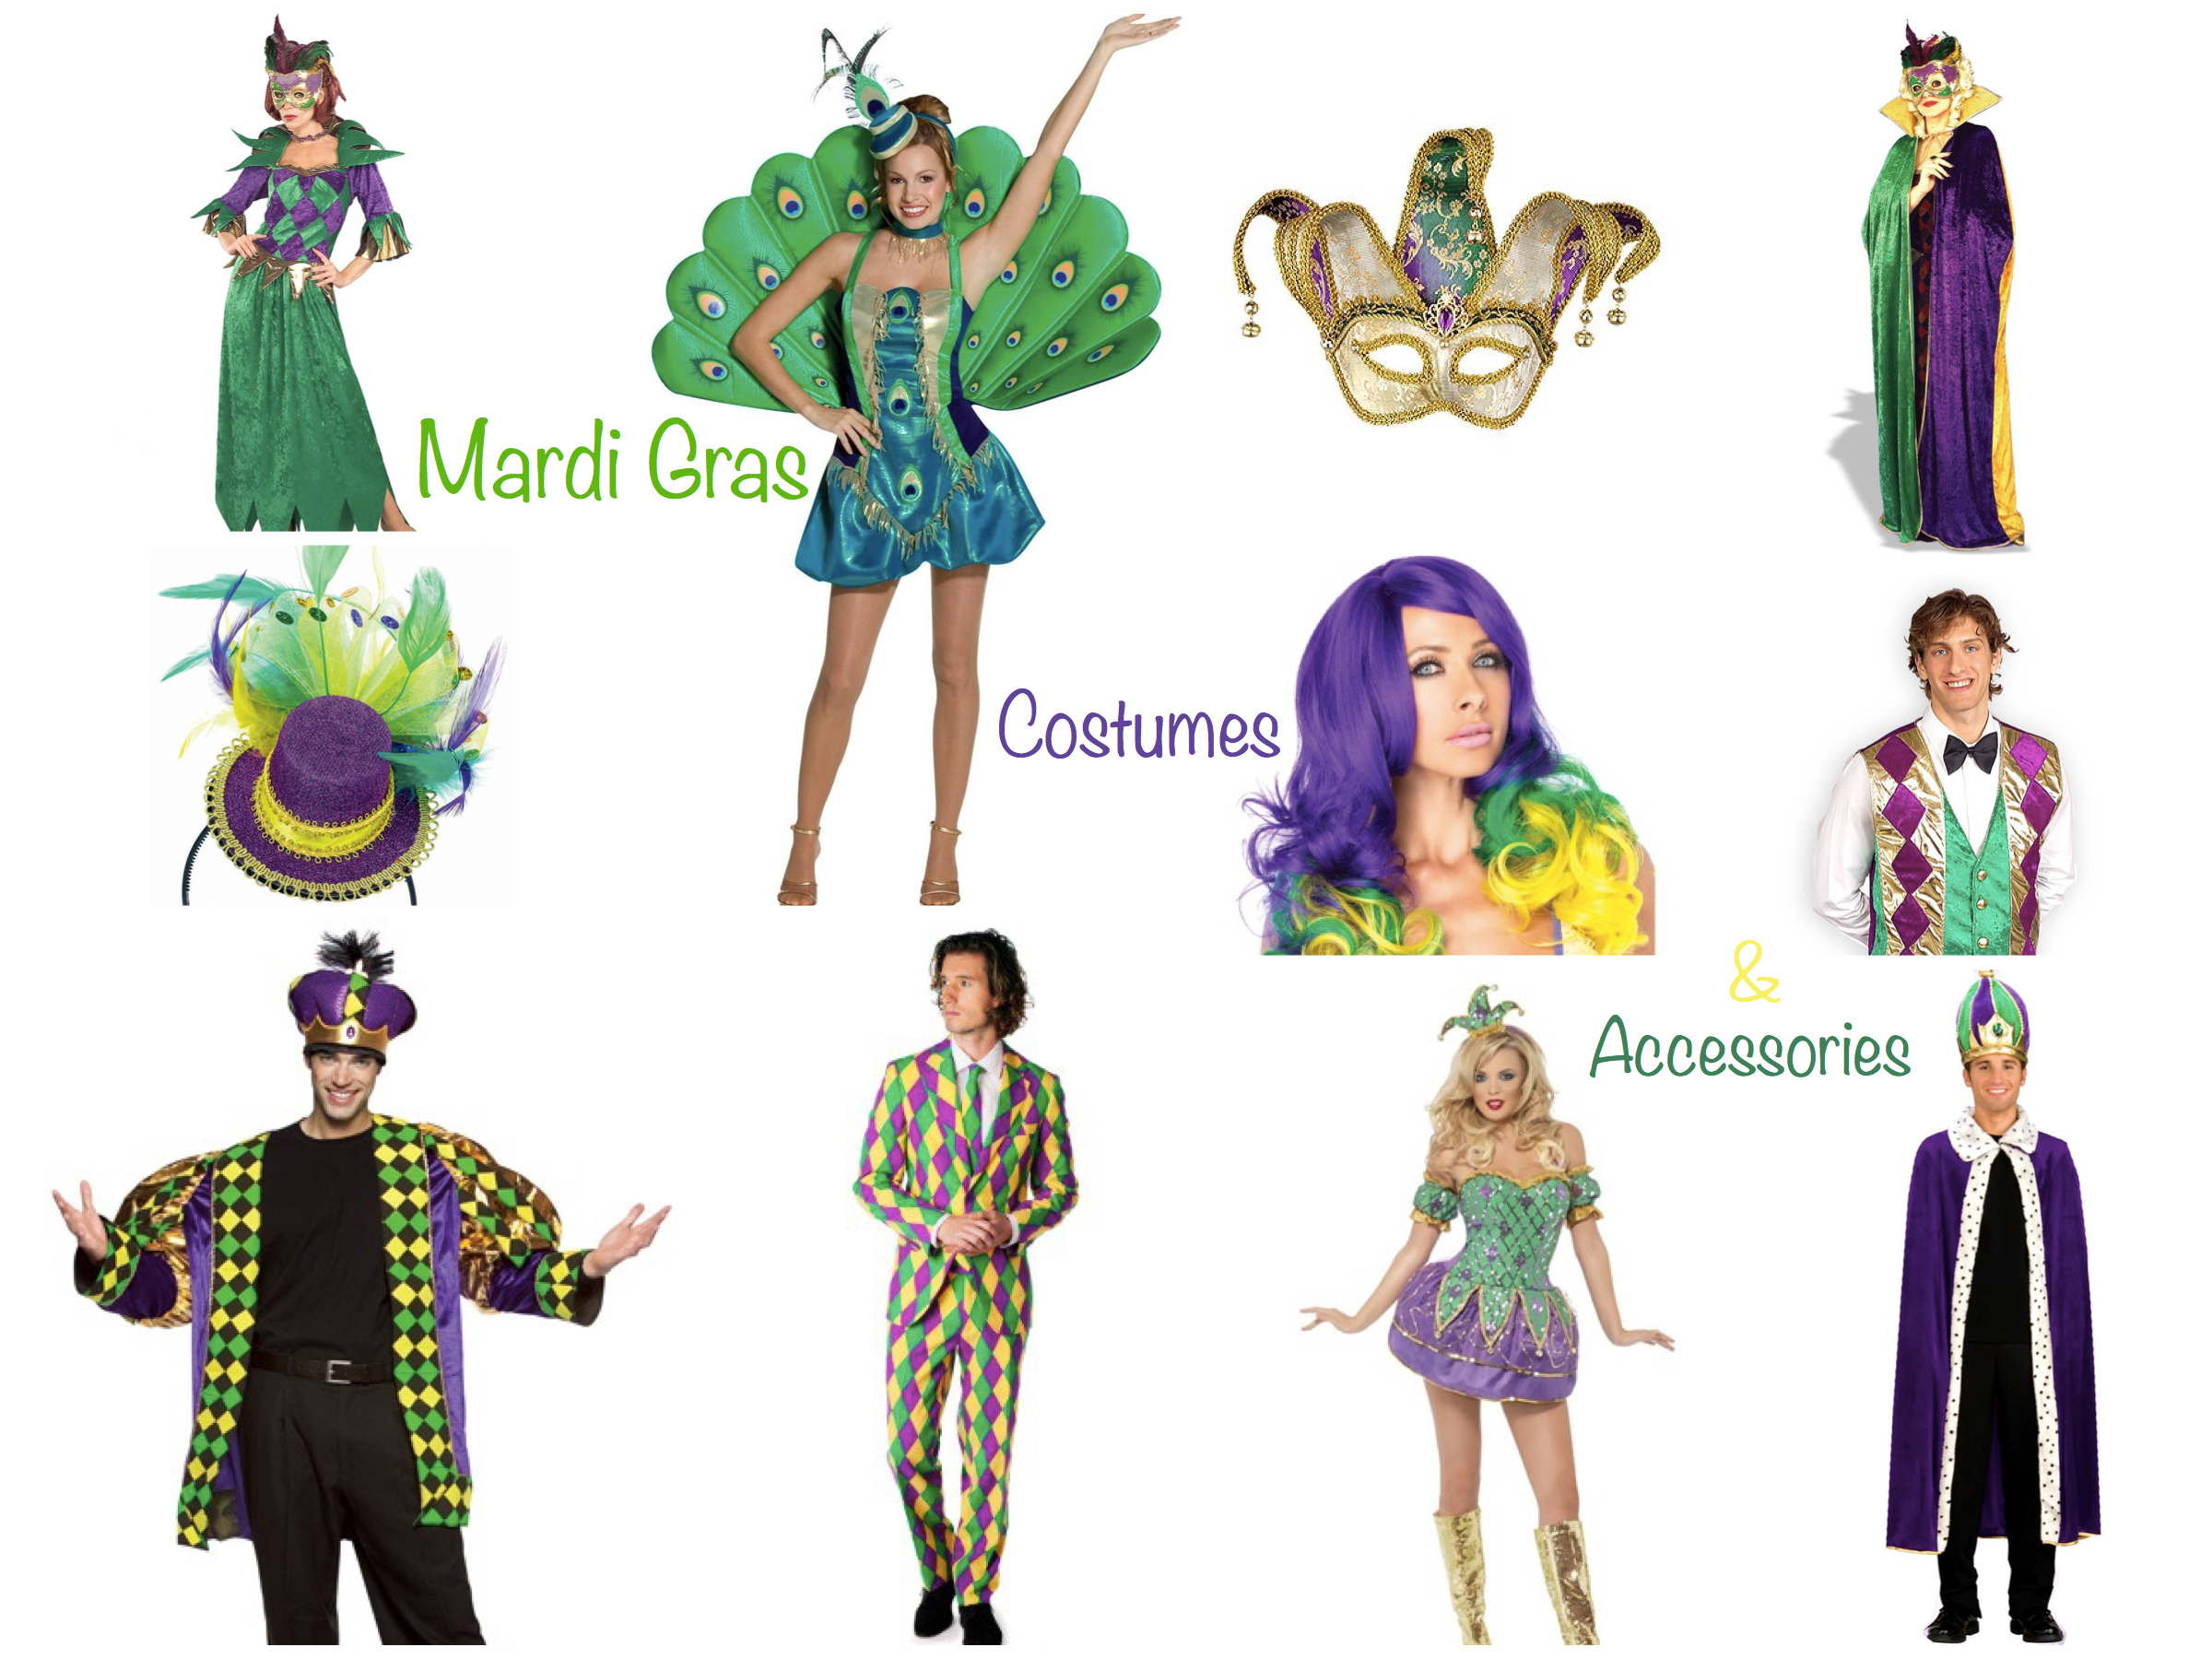 10 Fashionable Mardi Gras Costume Ideas For Women %name